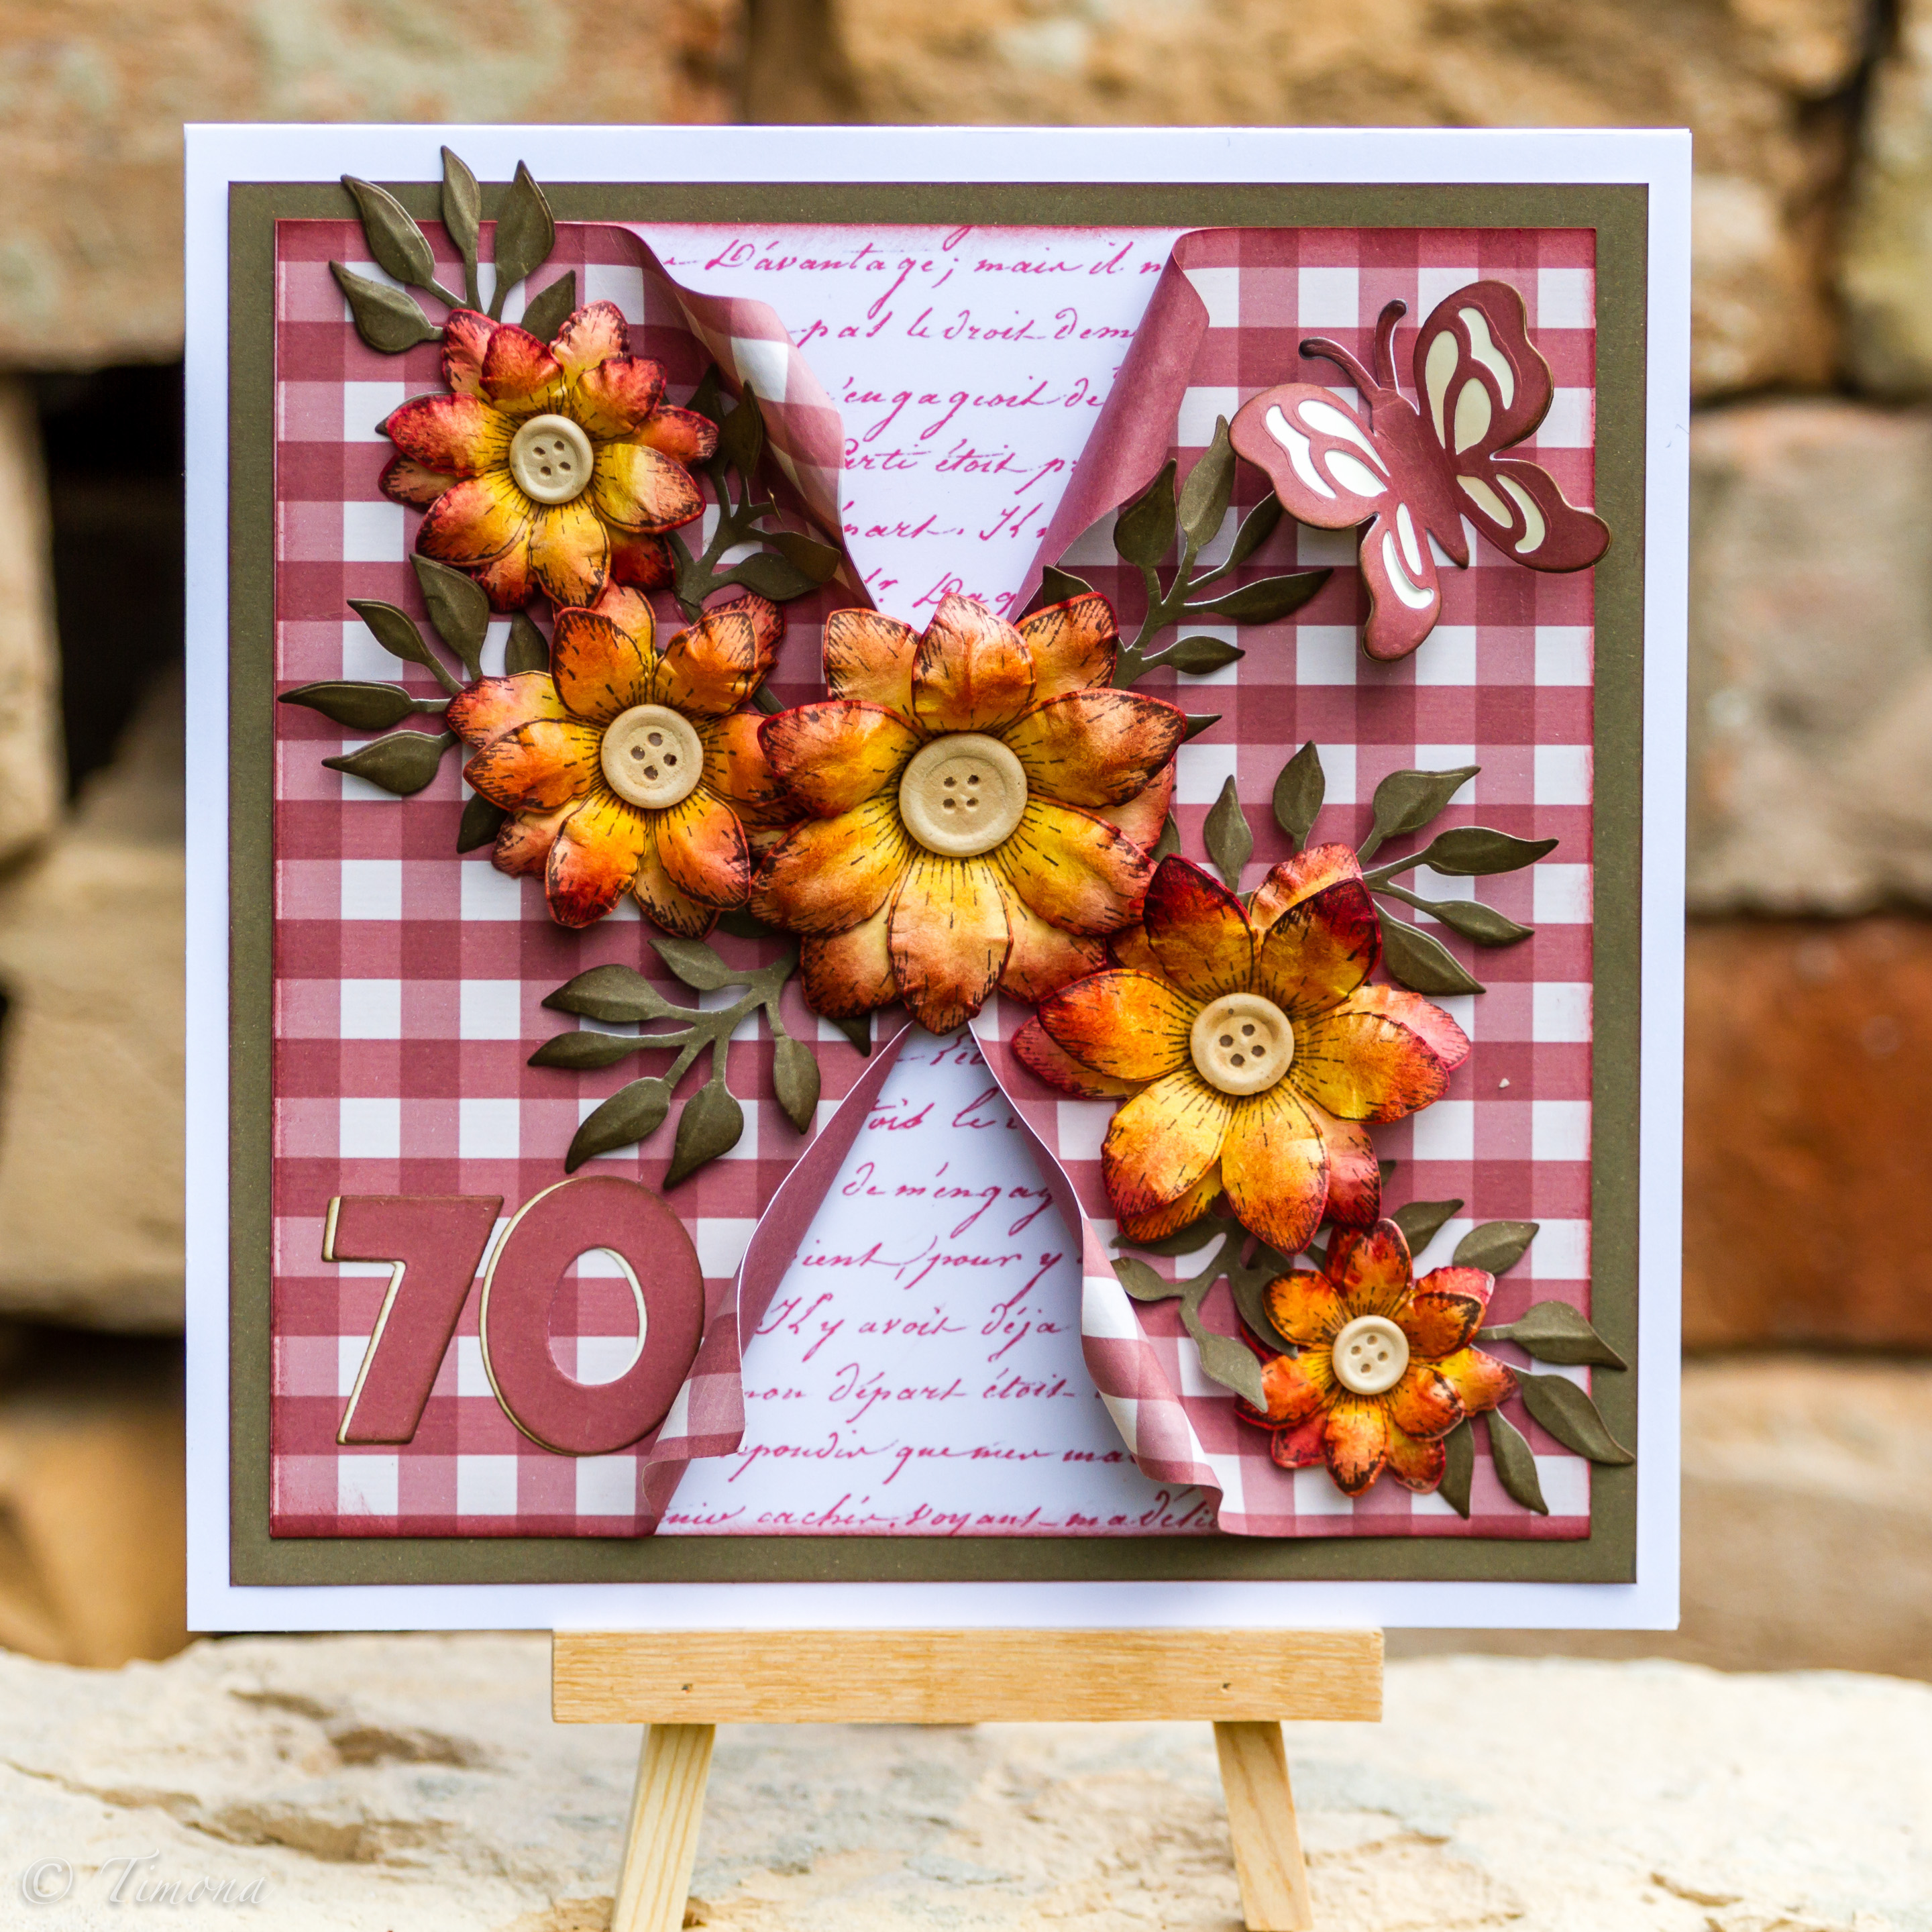 Card with handmade flowers